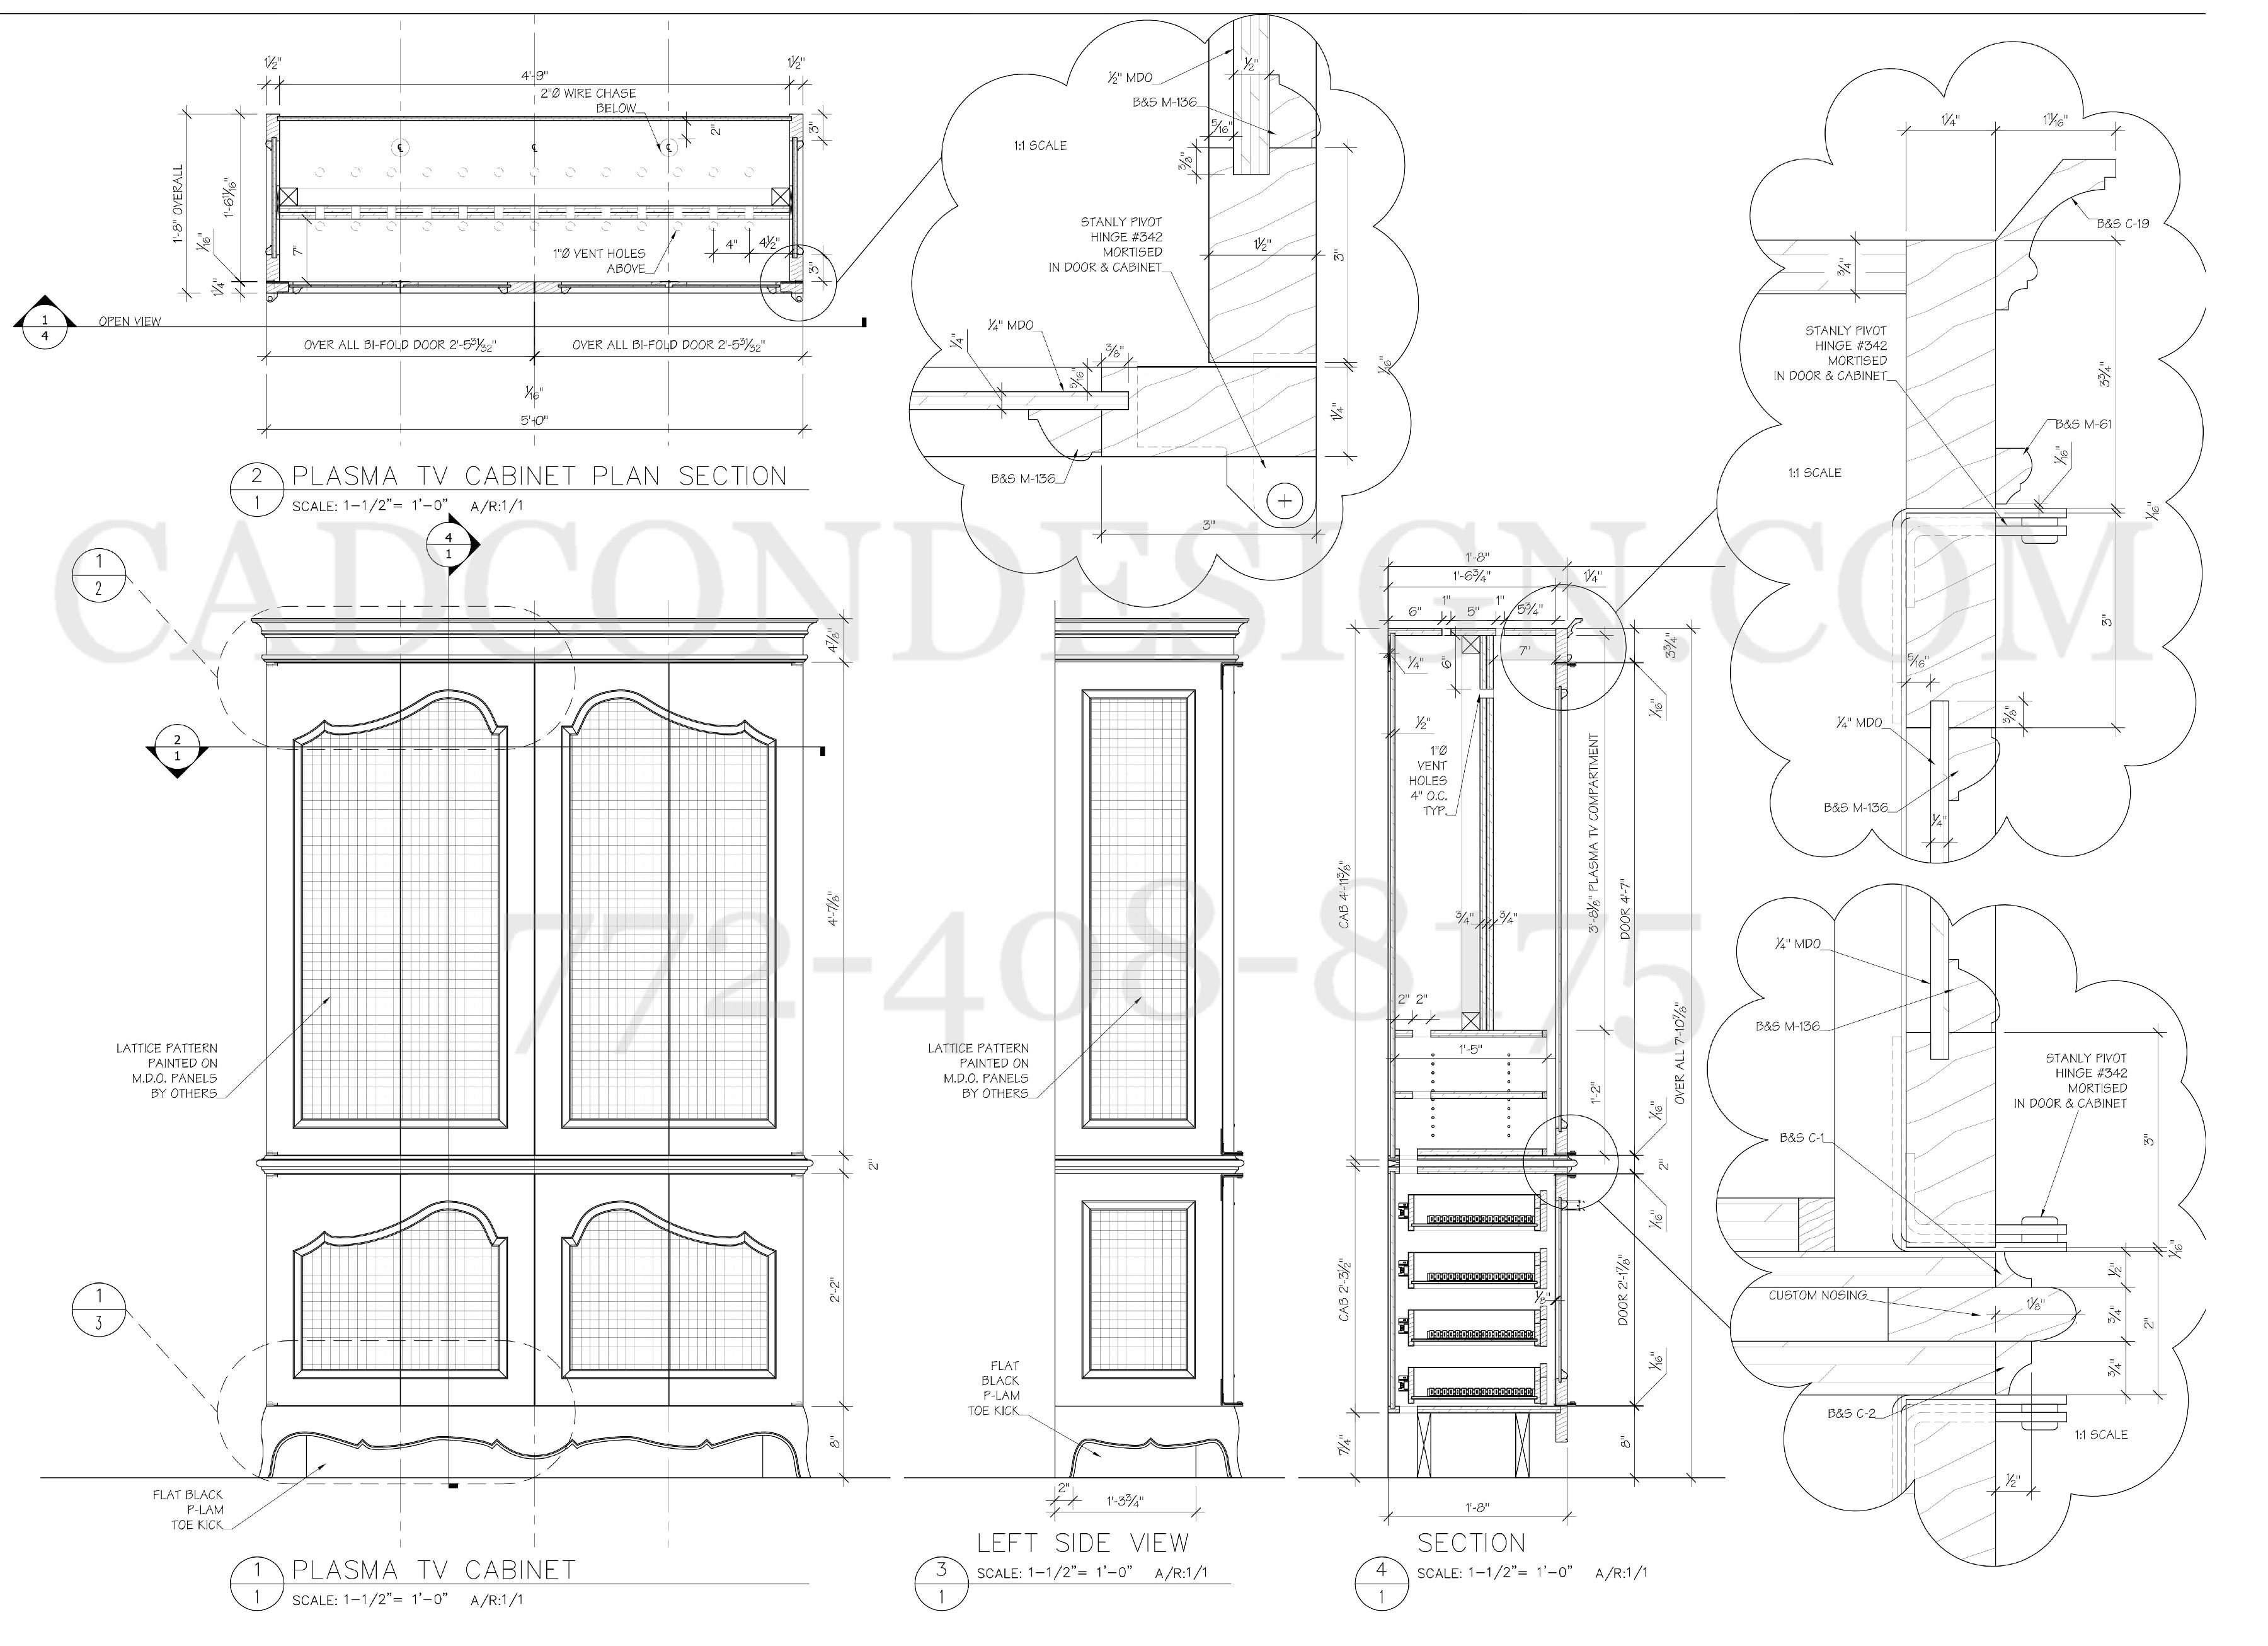 Millwork Shop Drawings Are Like An Insurance Policy That